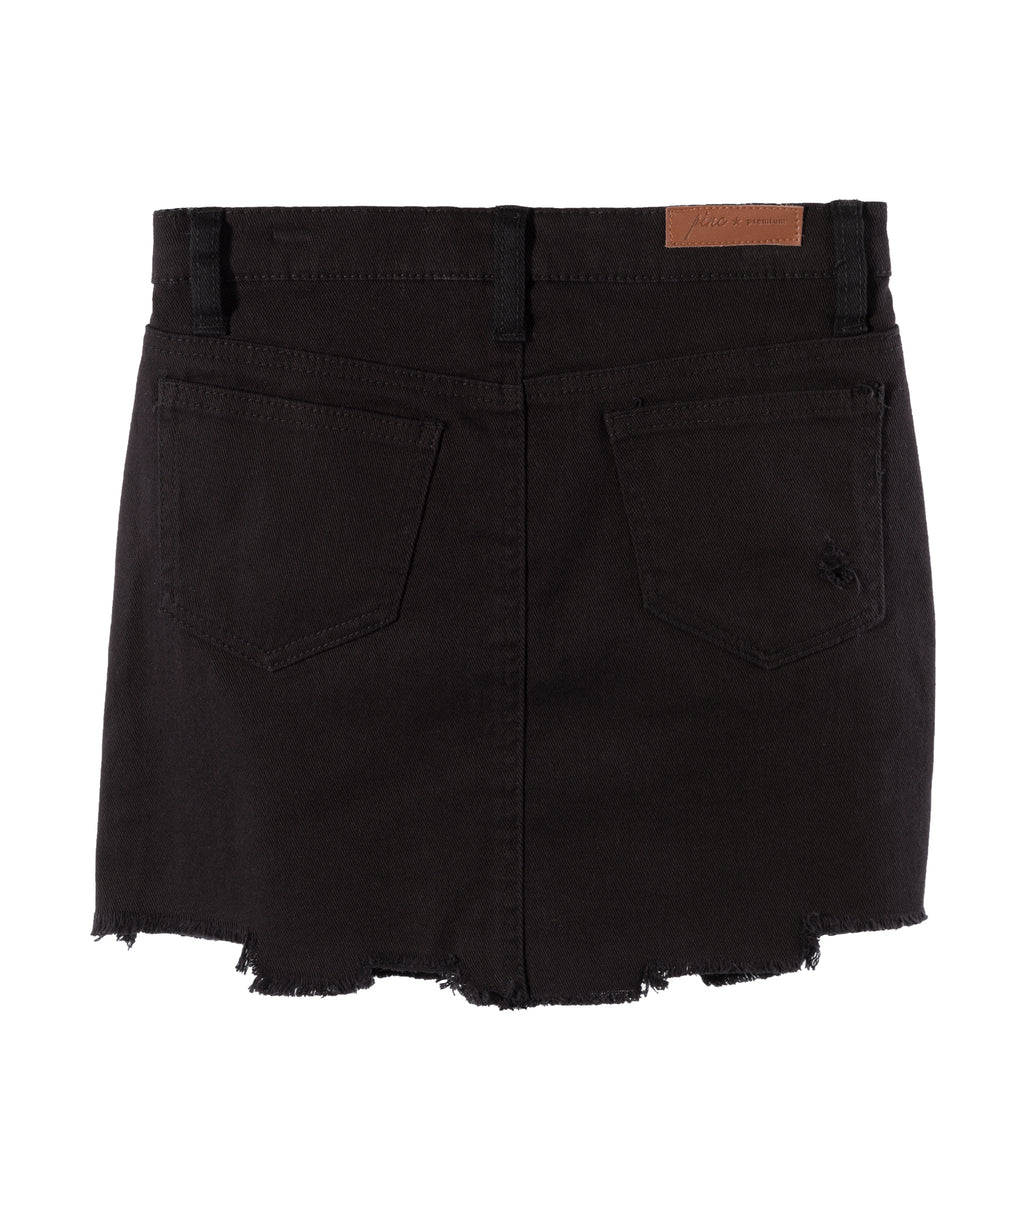 Pinc Premium Girls Black Distressed Denim Skirt